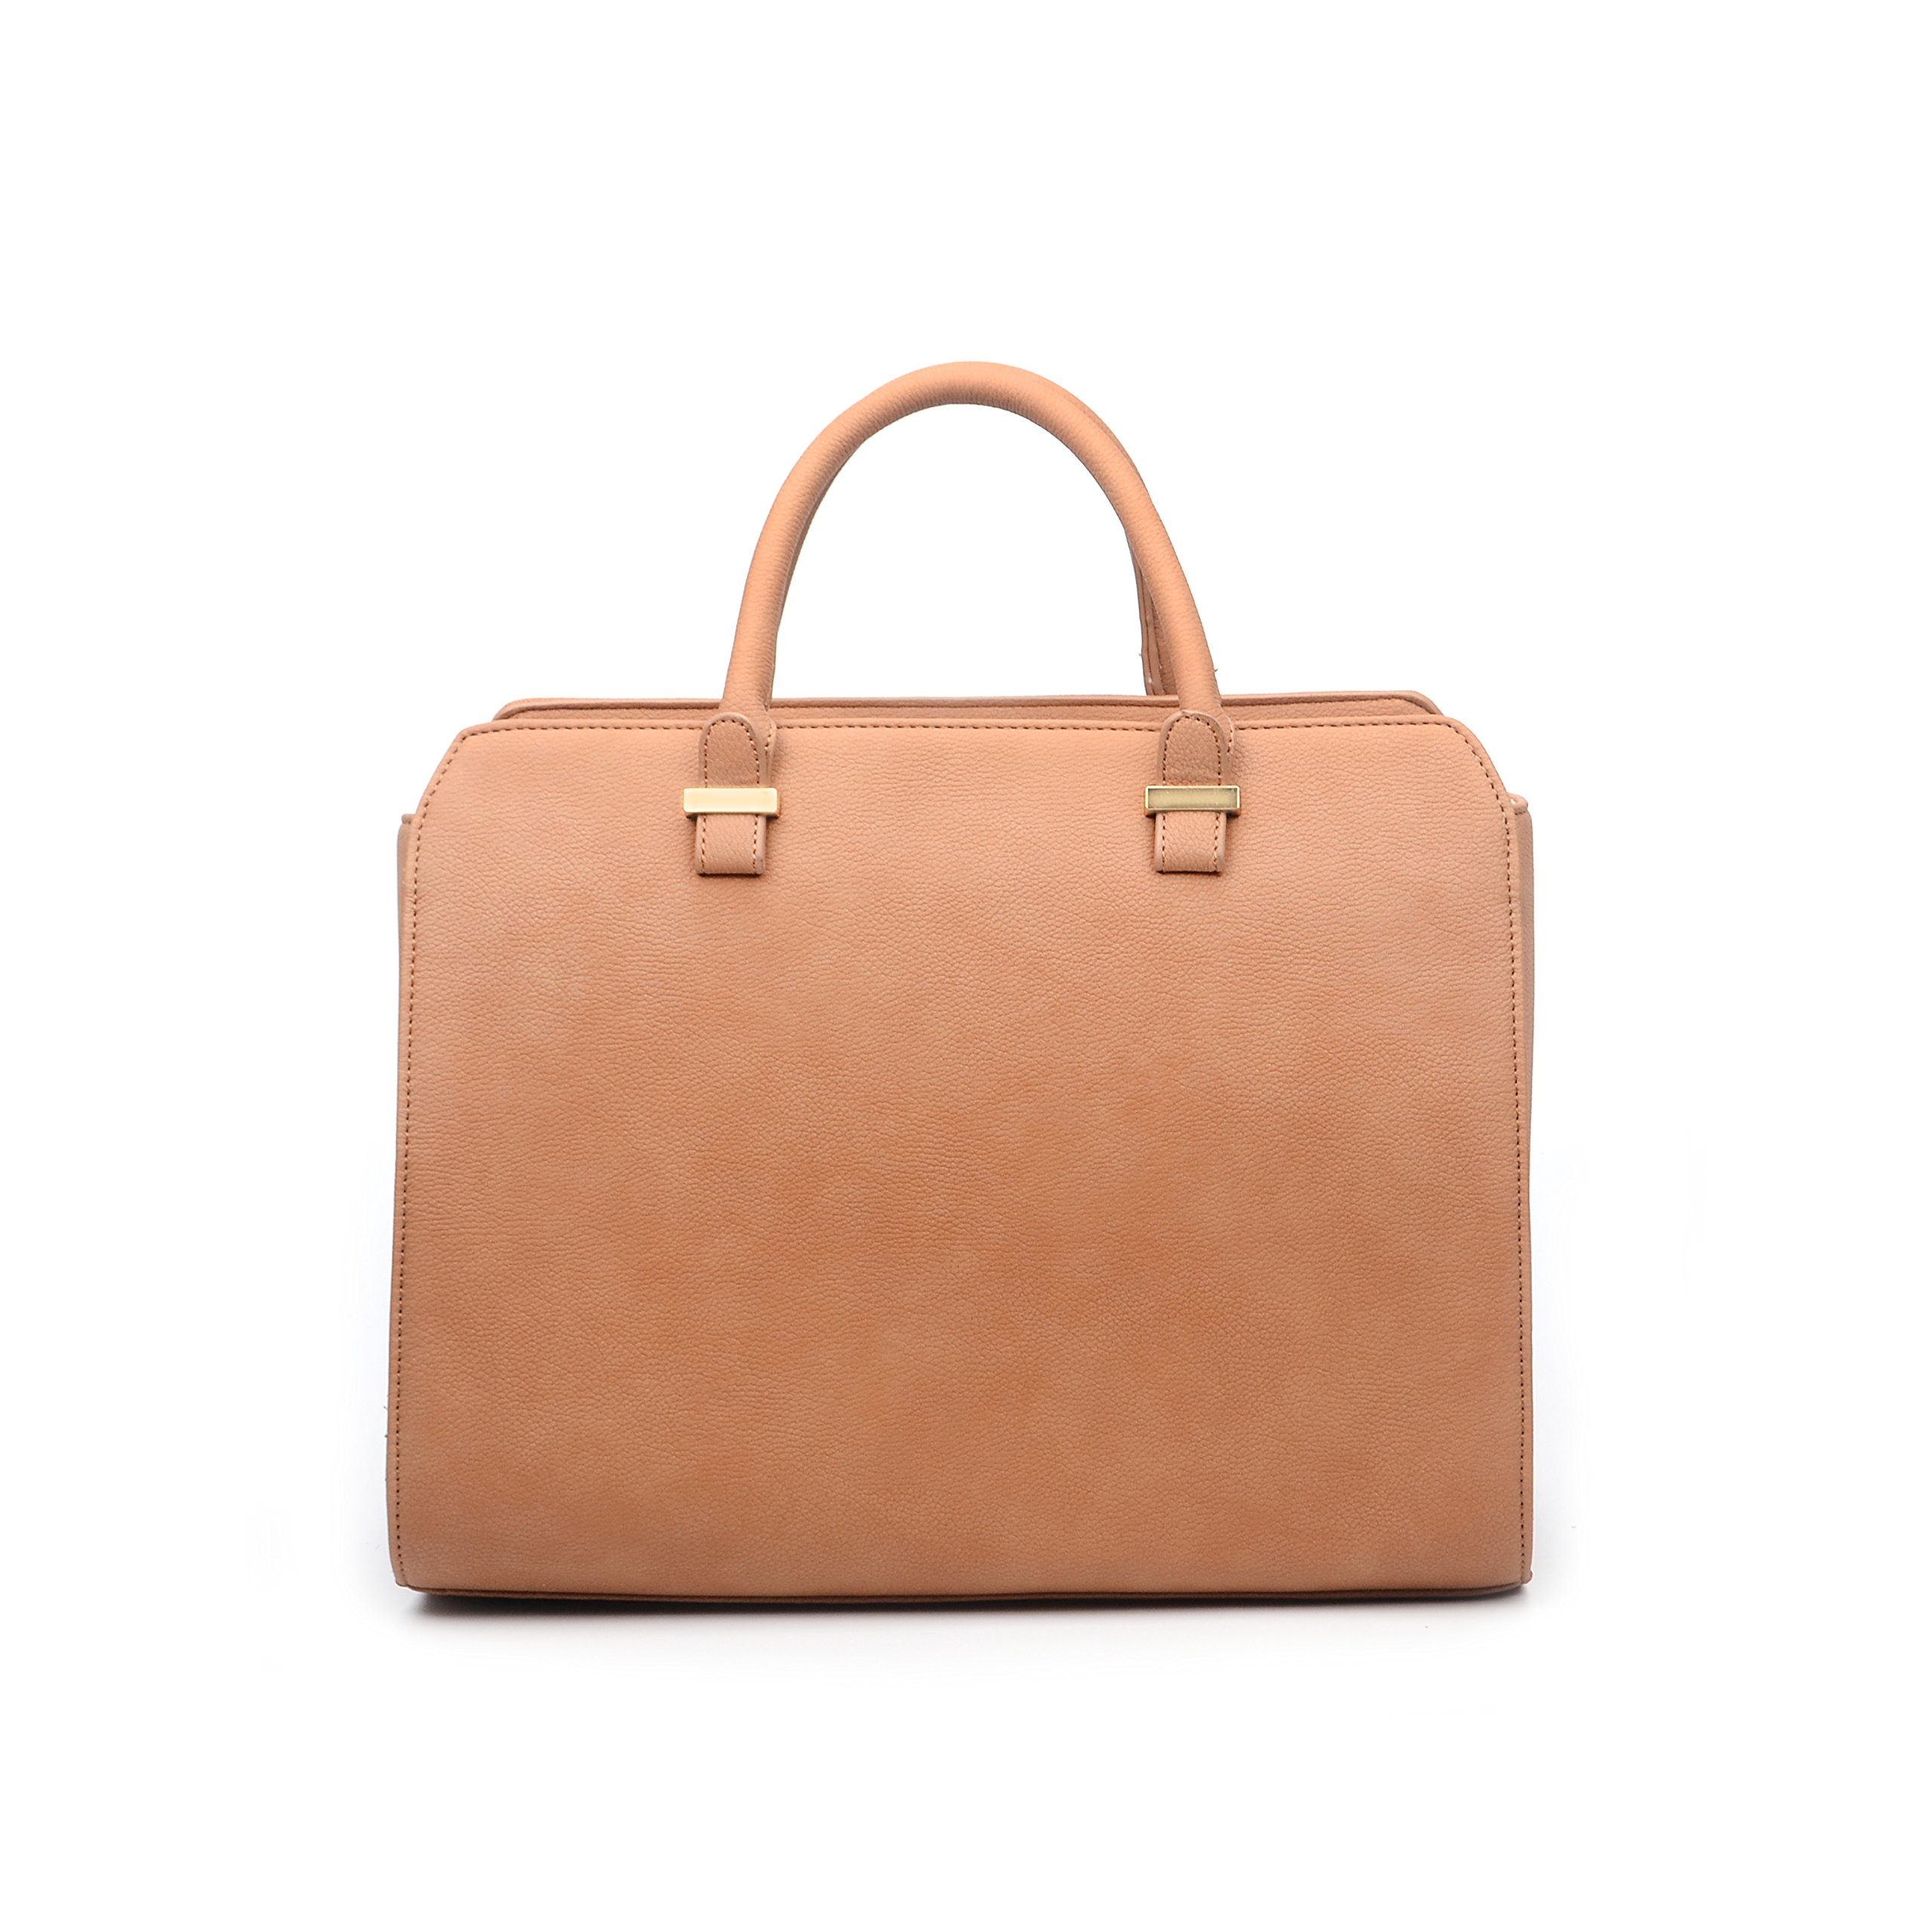 FASH Limited Classic Business Tote Bag (Matte) - Brown